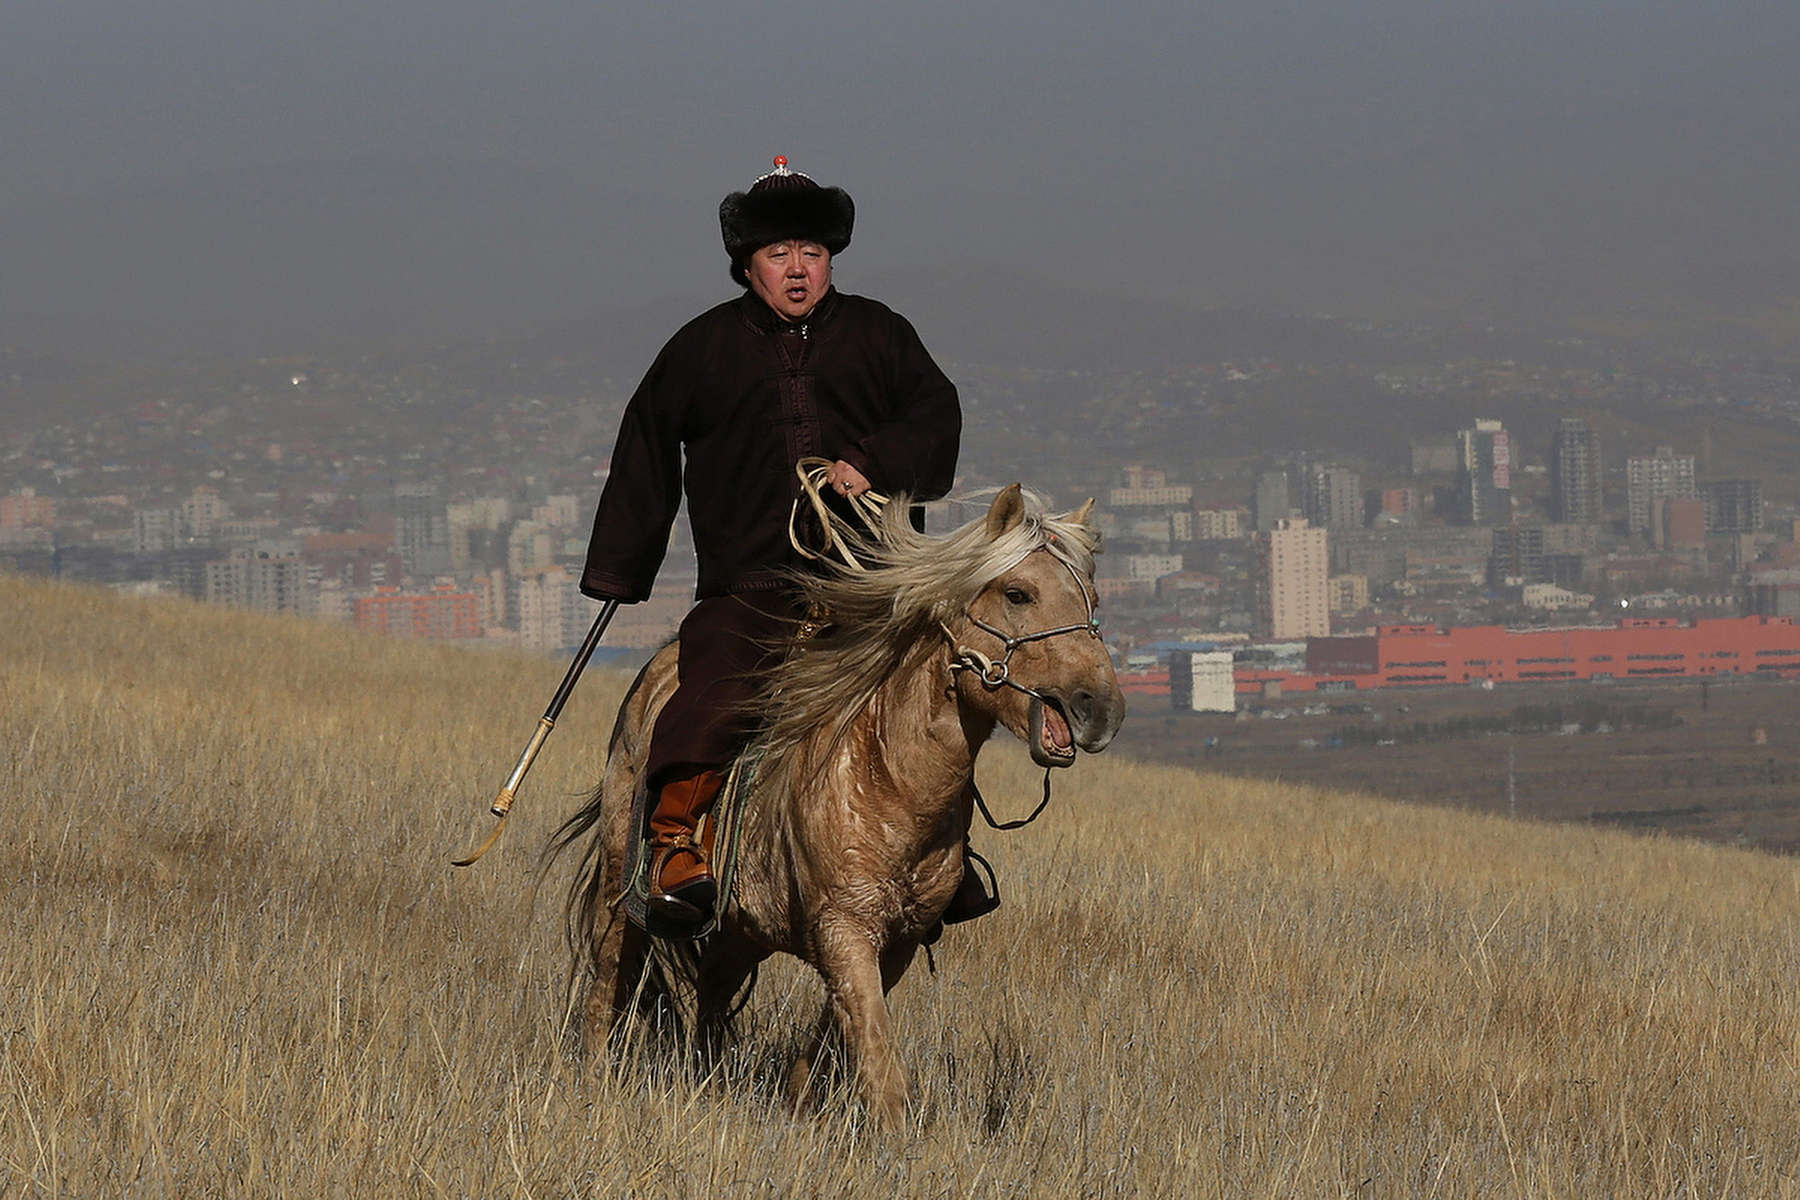 ULAANBATAAR, MONGOLIA - OCTOBER 26: President Tsakhiagiin Elbegdorj rides his horse along the grounds of the presidential residence October 26, 2012 in Ulaanbataar, Mongolia. President Tsakhiagiin Elbegdorj was elected  on May 25, 2009, he had previously served two terms as Prime Minister and held the positions of Deputy Speaker and Majority Leader in Parliament. The first lady, Bolormaa Khajidsuren is a mother of 4 children, and the extended Presidential family includes 20 foster children coming from a variety of government children's homes. Some 100 years ago, Mongolia gained independence from Qing China, and more than 20 years ago it removed itself from the Soviet Bloc. Since then, the country has been undergoing massive social, economic and political changes. The Oyu Tolgoi copper and gold mine is Mongolia's biggest foreign investment project to date adding an estimated 35% value to the country's GDP. Mongolia is a land of amazing contrasts and is the most sparsely populated country on earth with fewer than 3 million people. (Photo by Paula Bronstein/Getty Images)